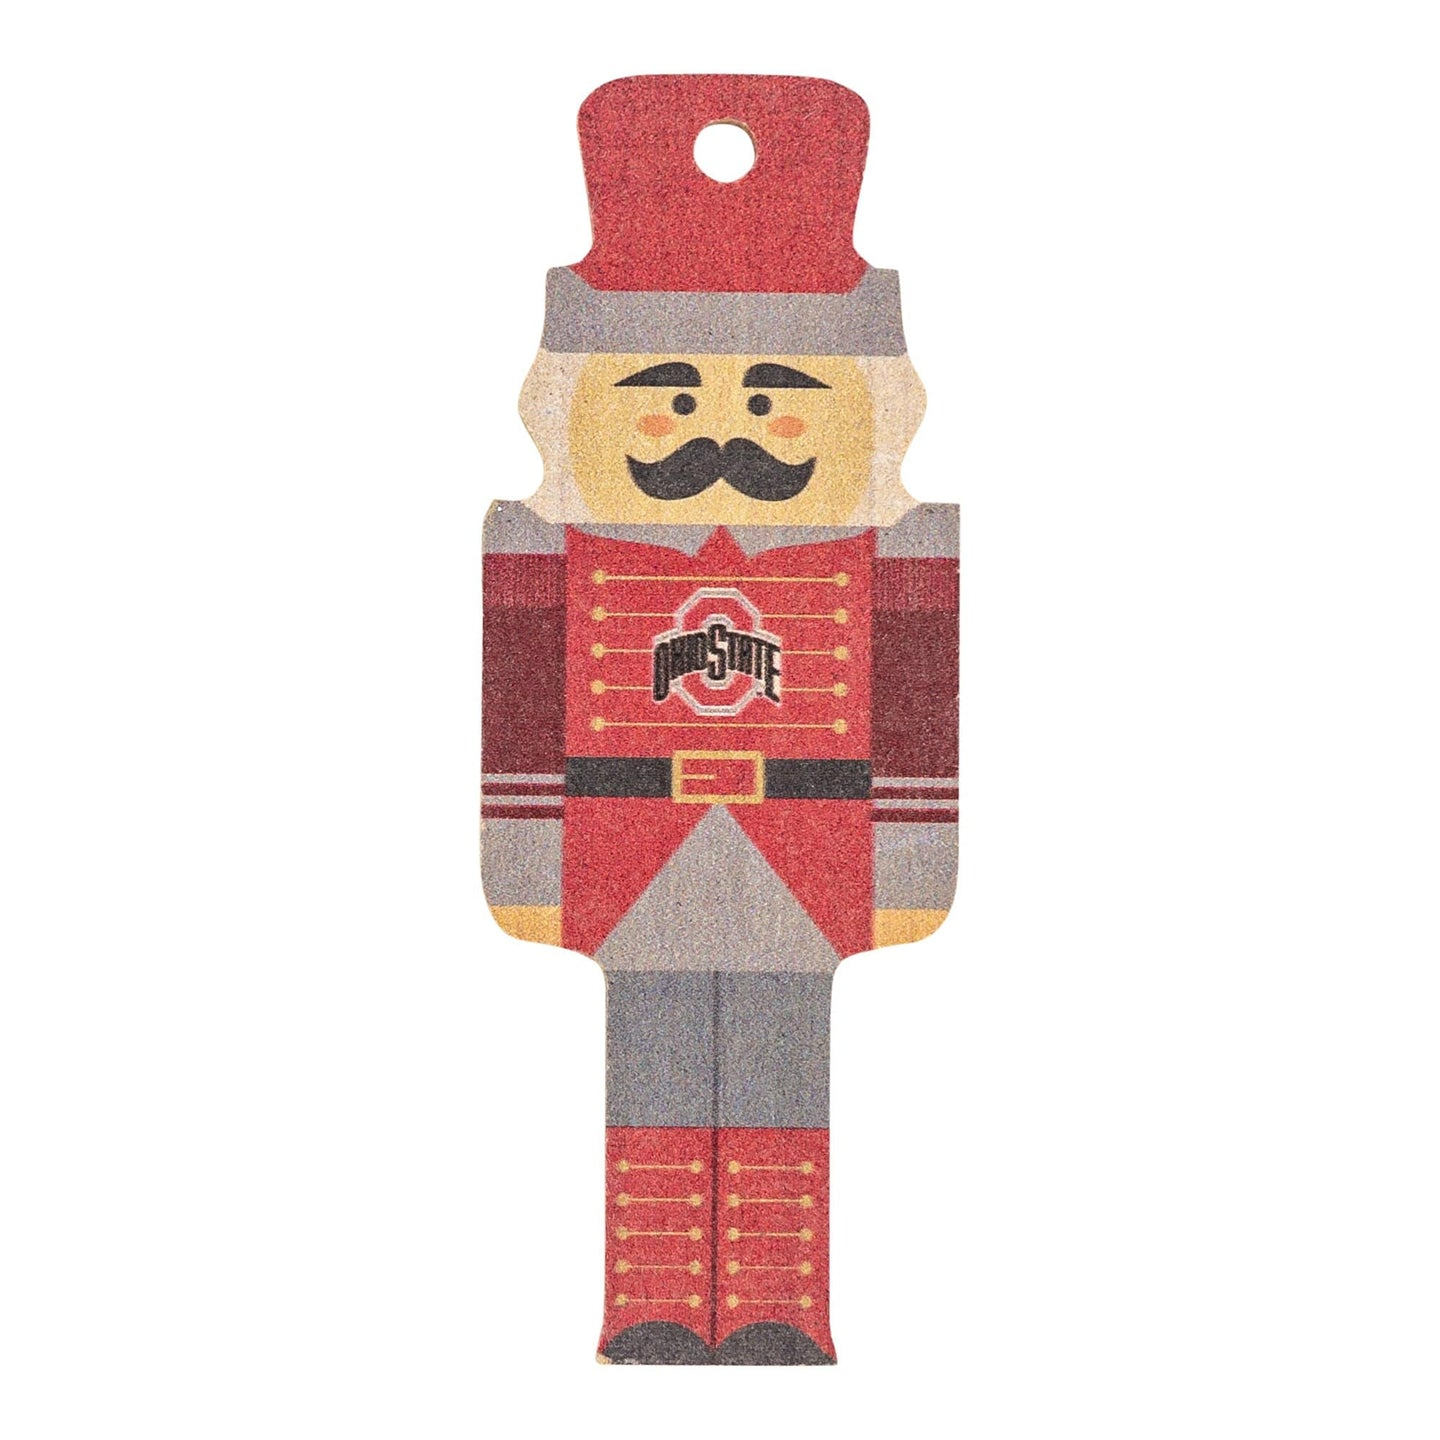 Ohio State Nutcracker Ornament